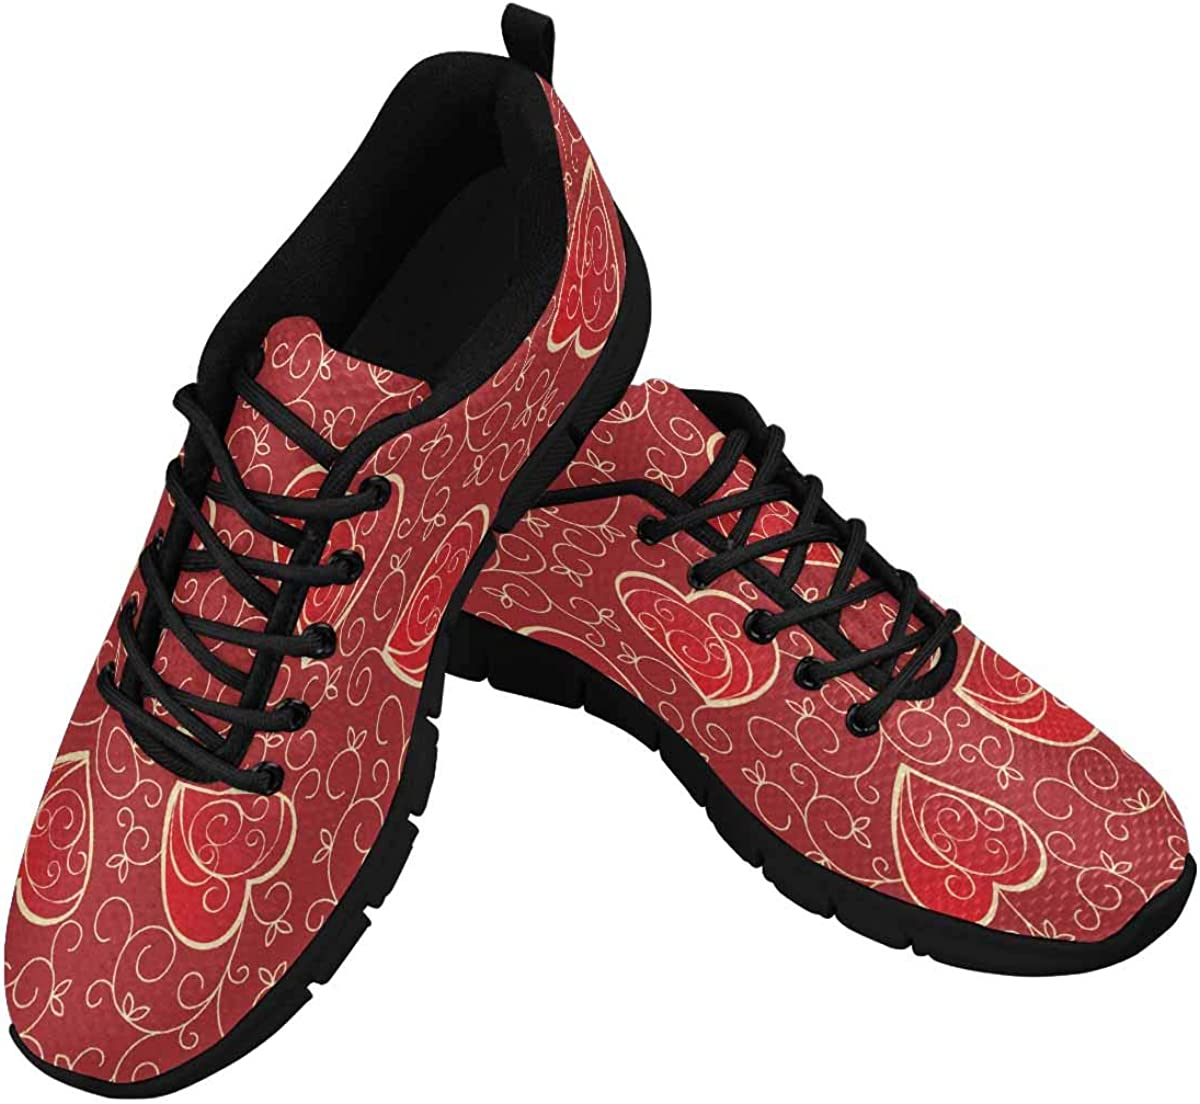 INTERESTPRINT Vintage Valentines with Hearts Women's Athletic Walking Shoes Comfort Mesh Non Slip